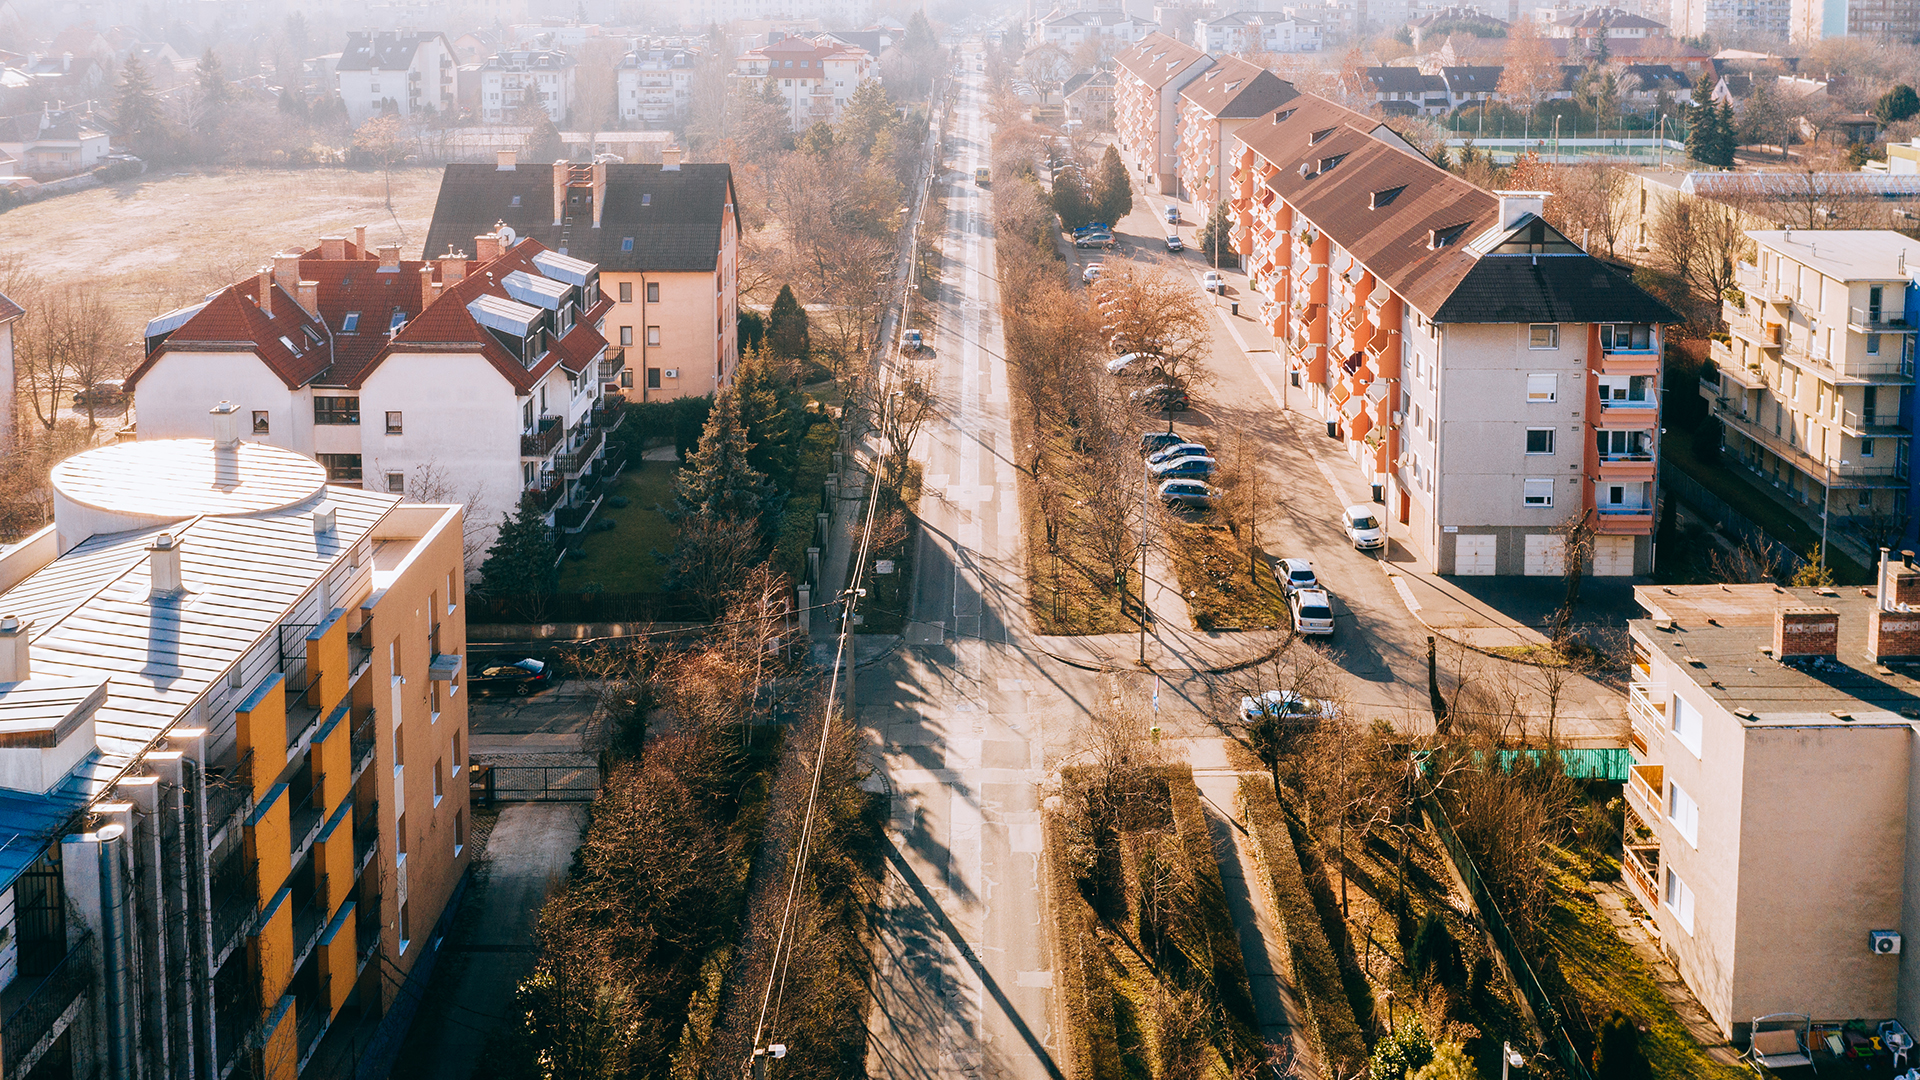 500px Blog » Questmas winner Viktor Szabo tests his new DJI